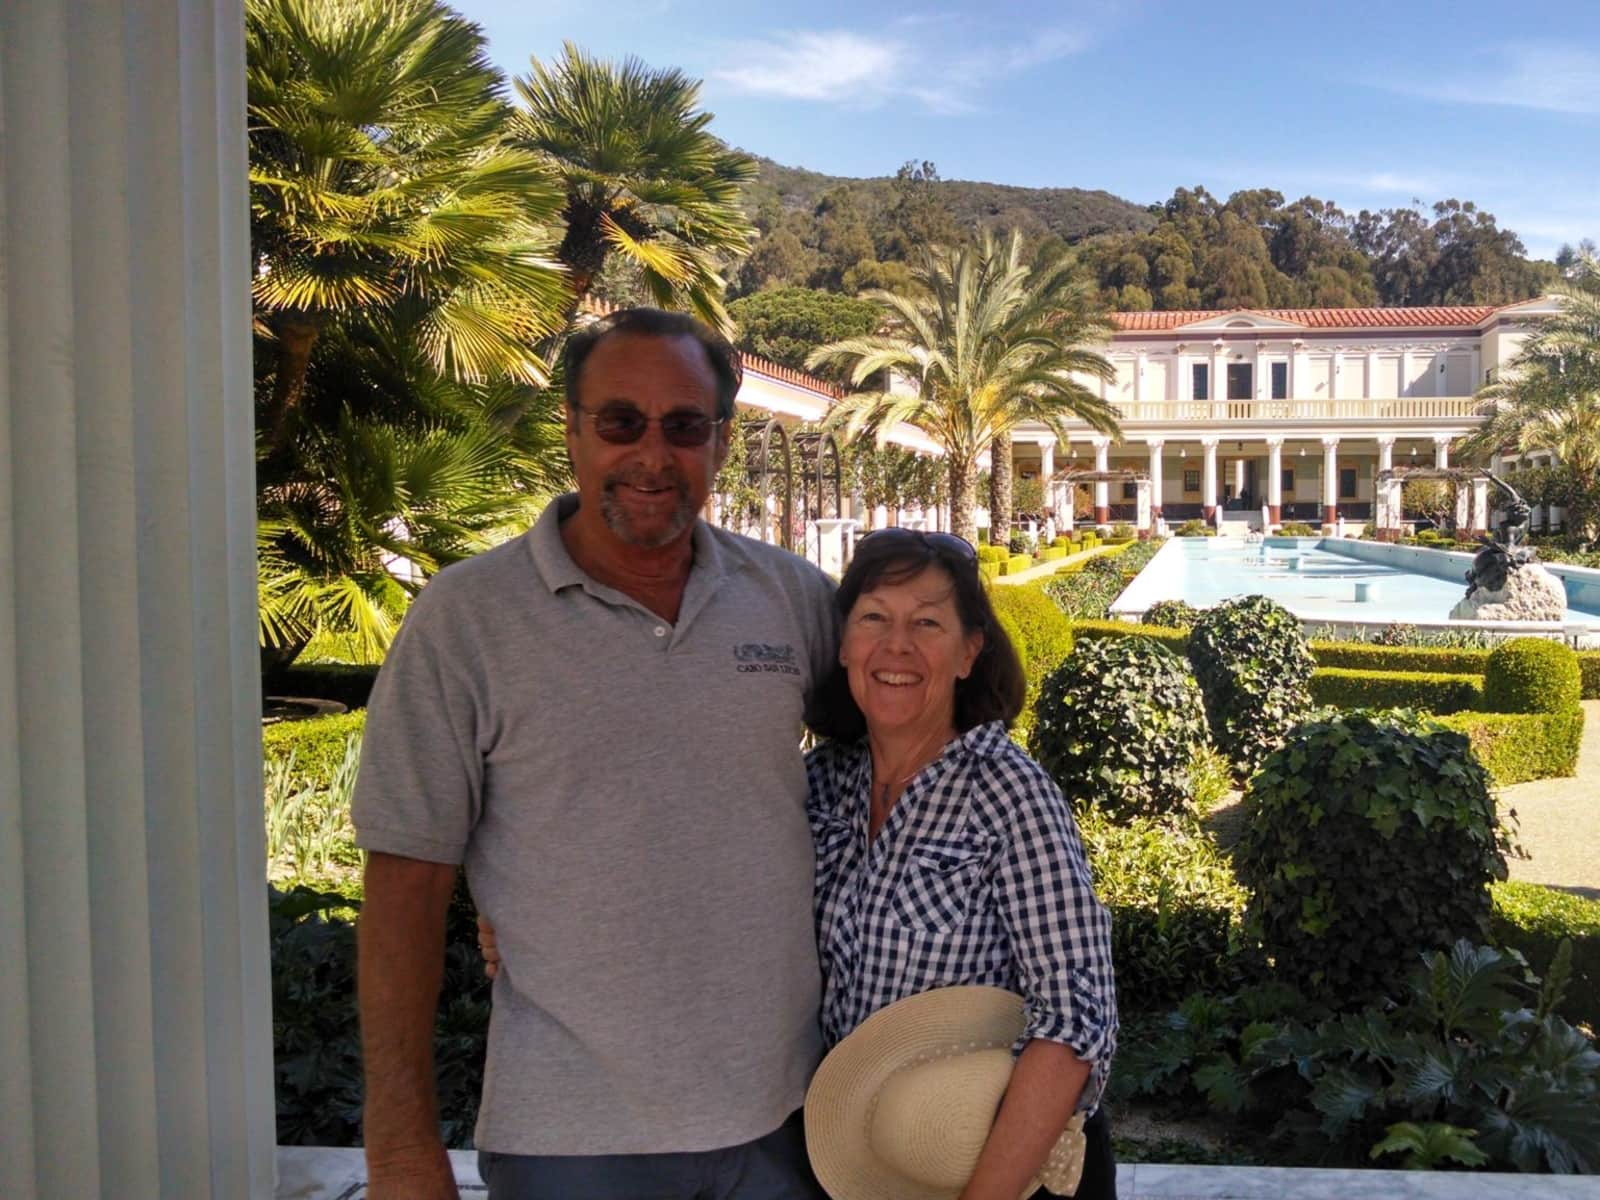 Bill and mary from Surprise, Arizona, United States